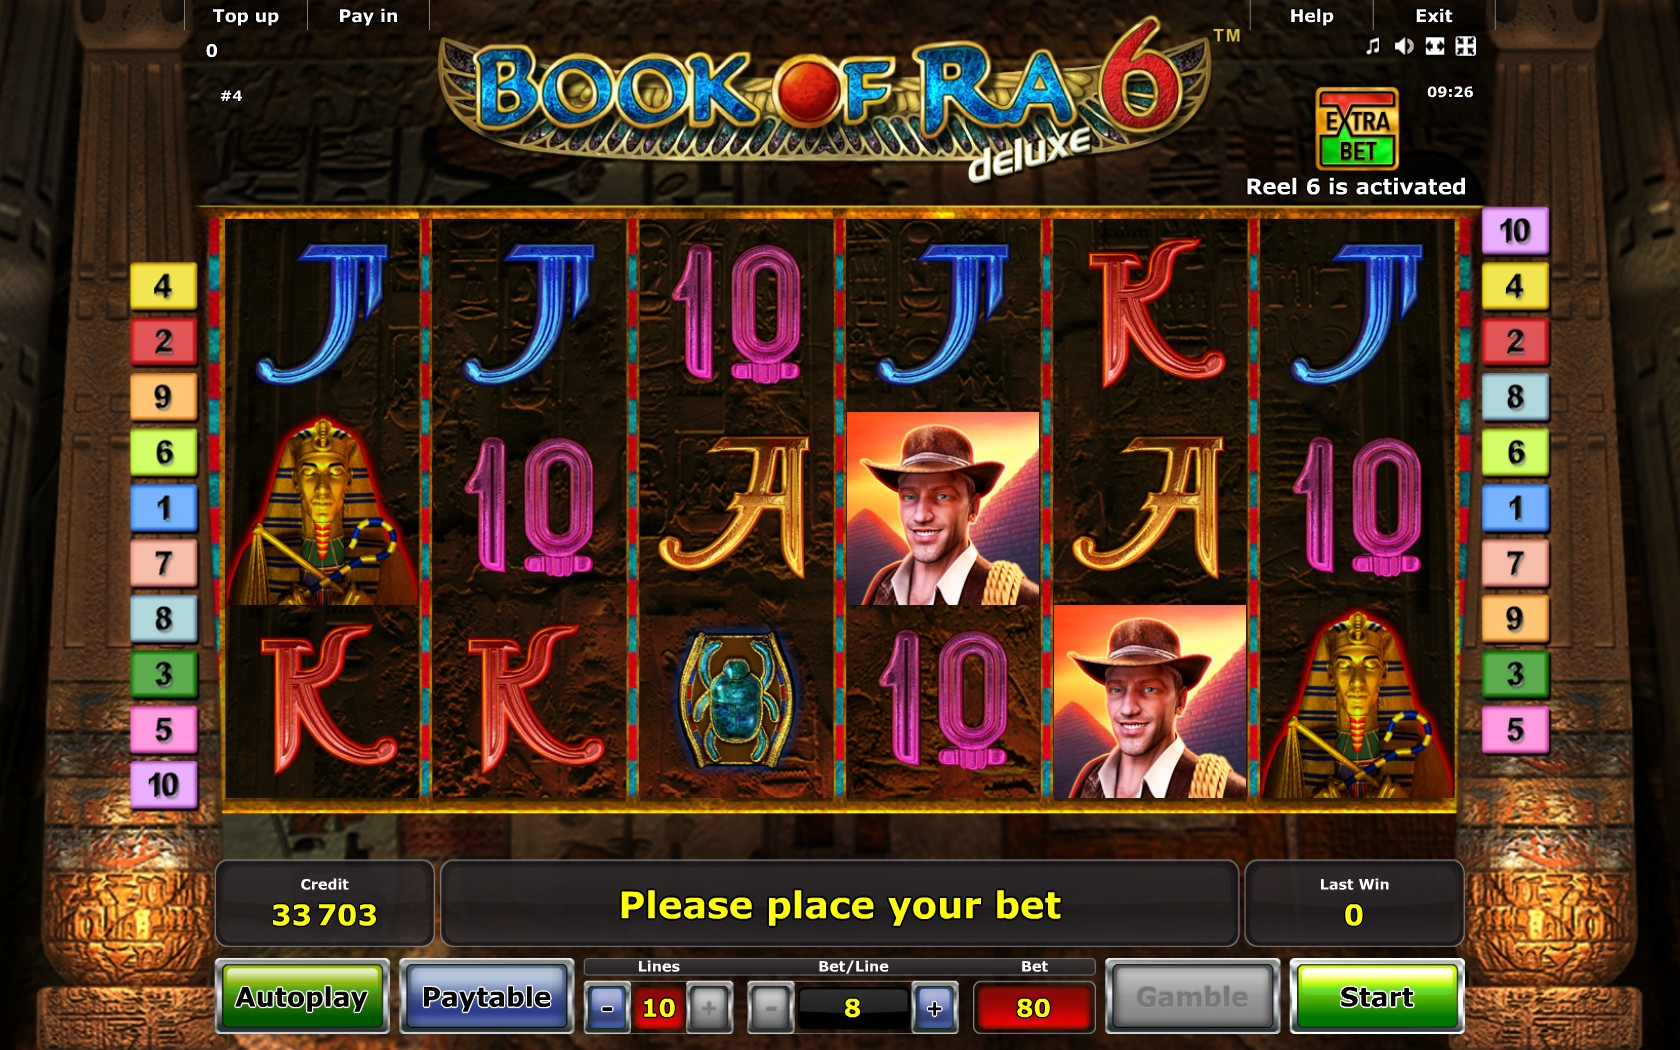 buy online casino book of rae